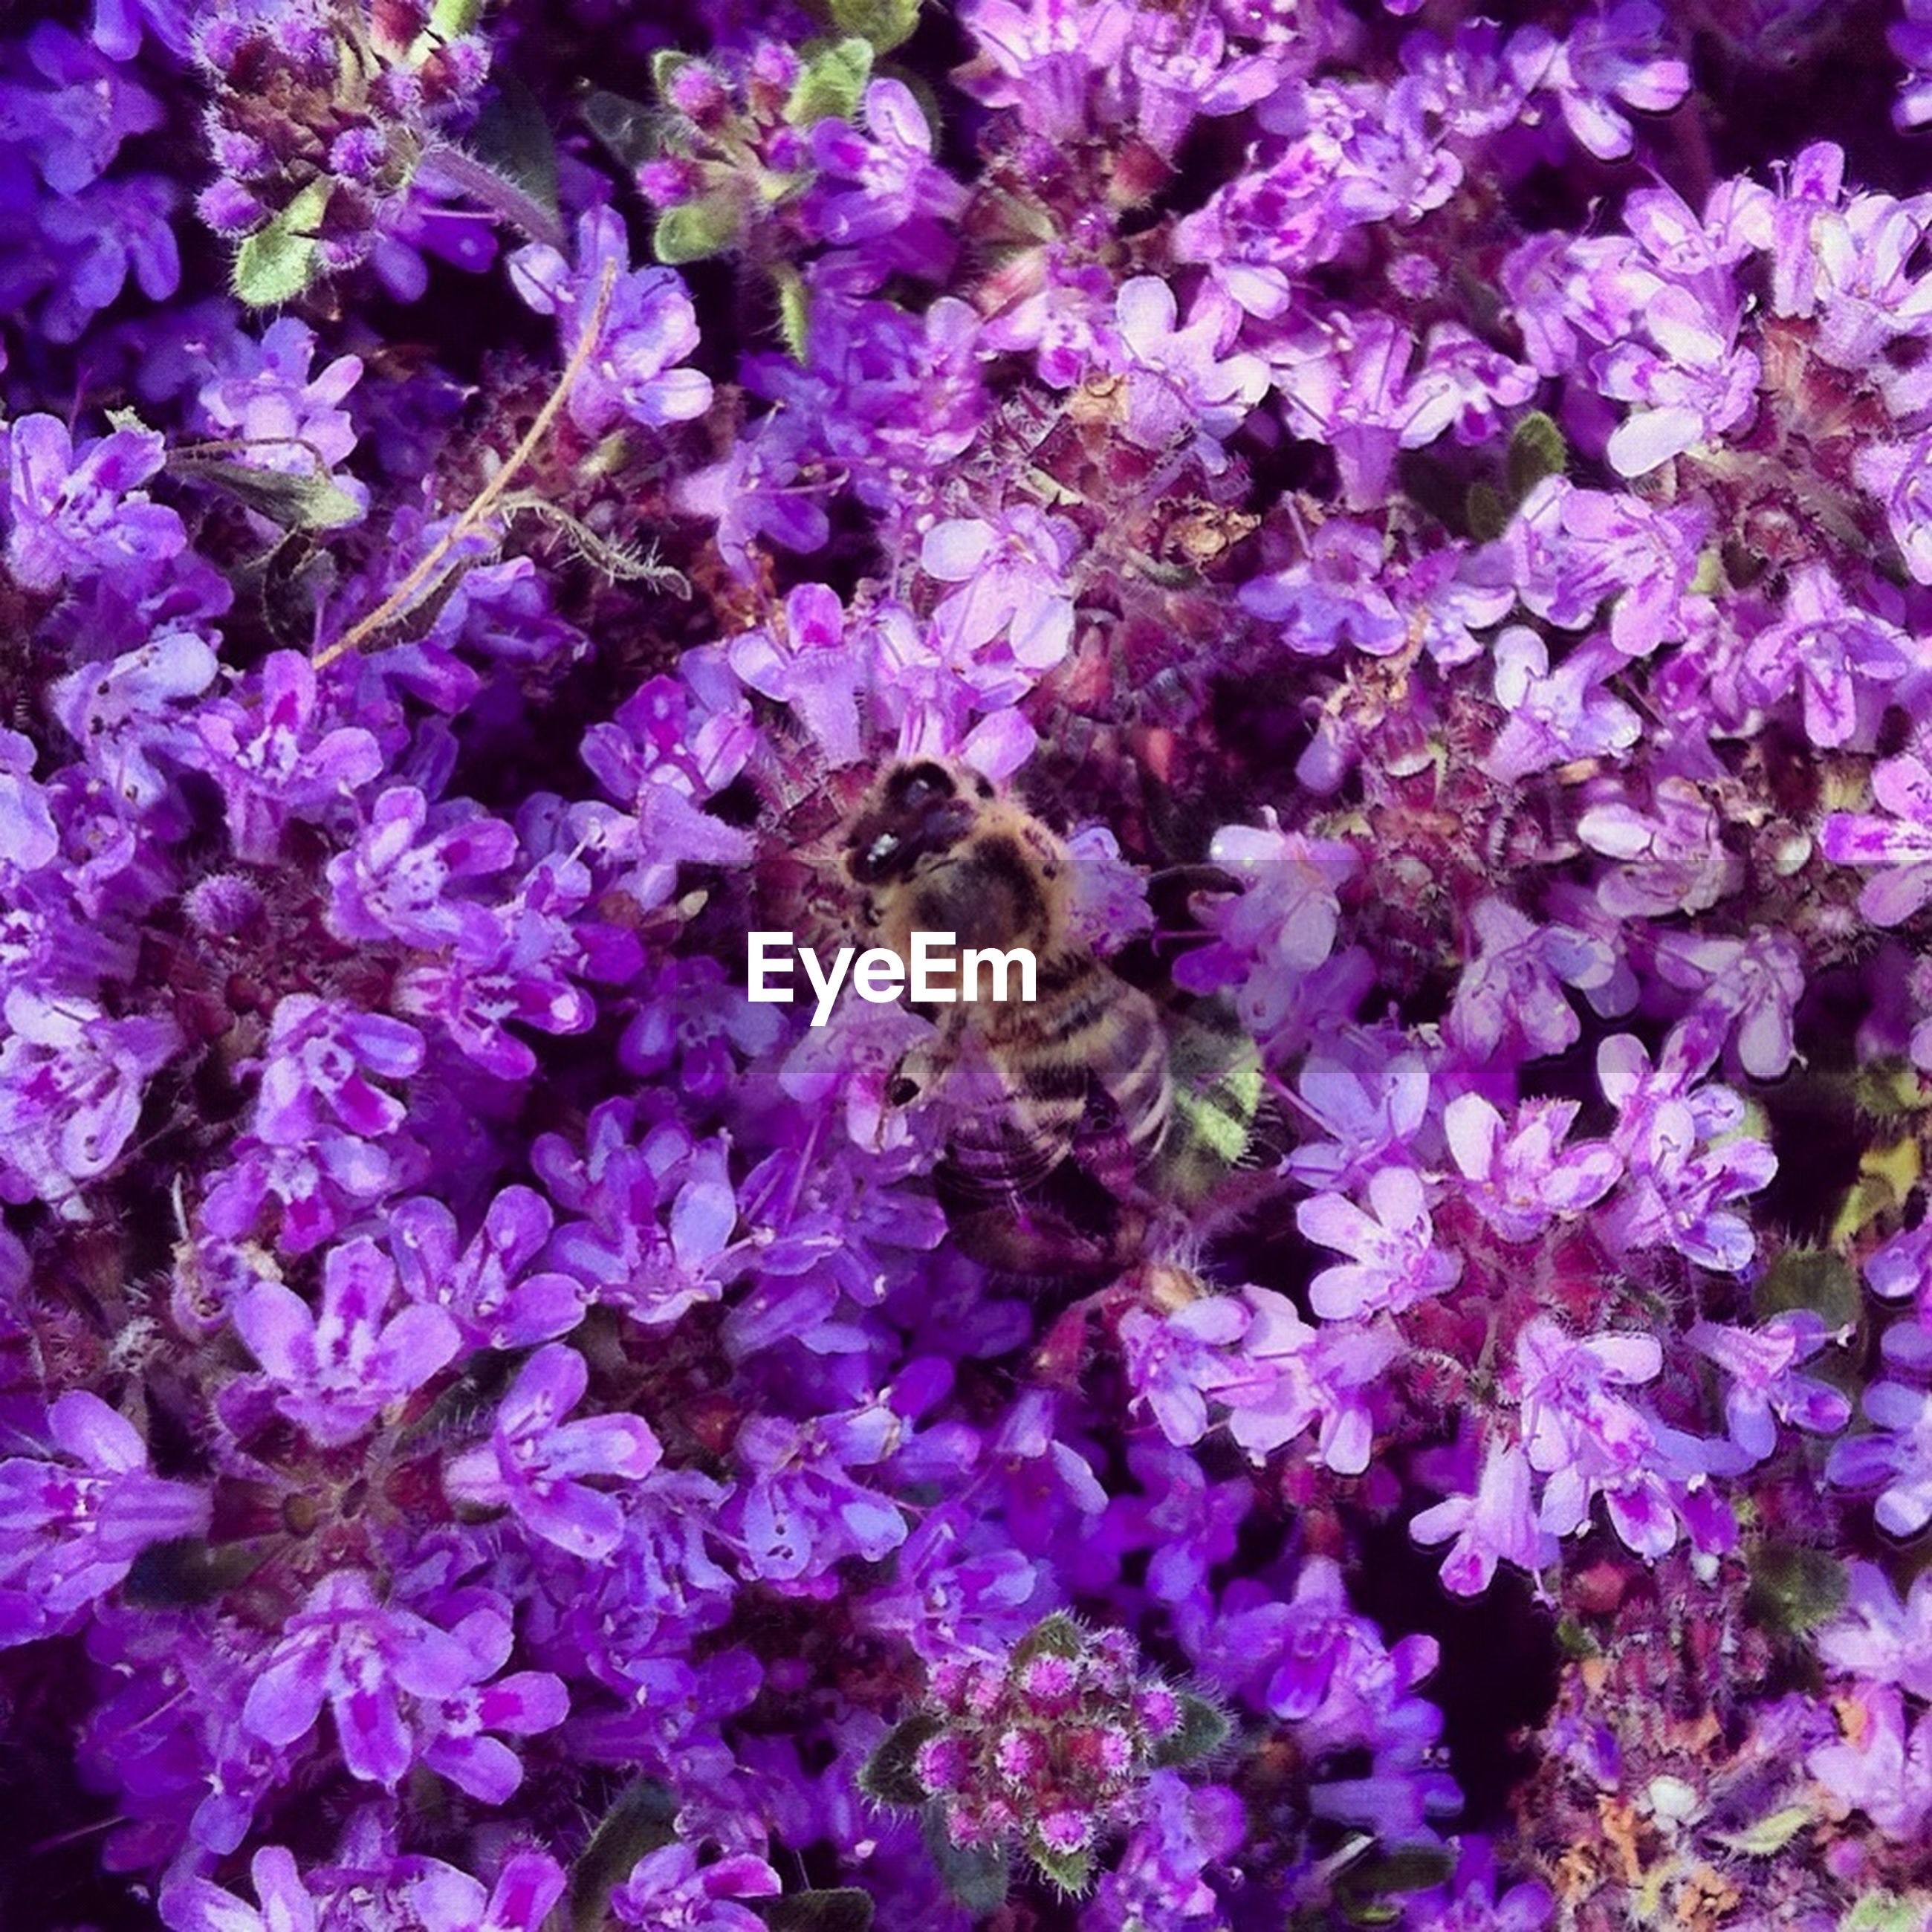 flower, animal themes, insect, animals in the wild, one animal, wildlife, freshness, petal, fragility, bee, pollination, beauty in nature, purple, growth, nature, symbiotic relationship, honey bee, high angle view, plant, flower head